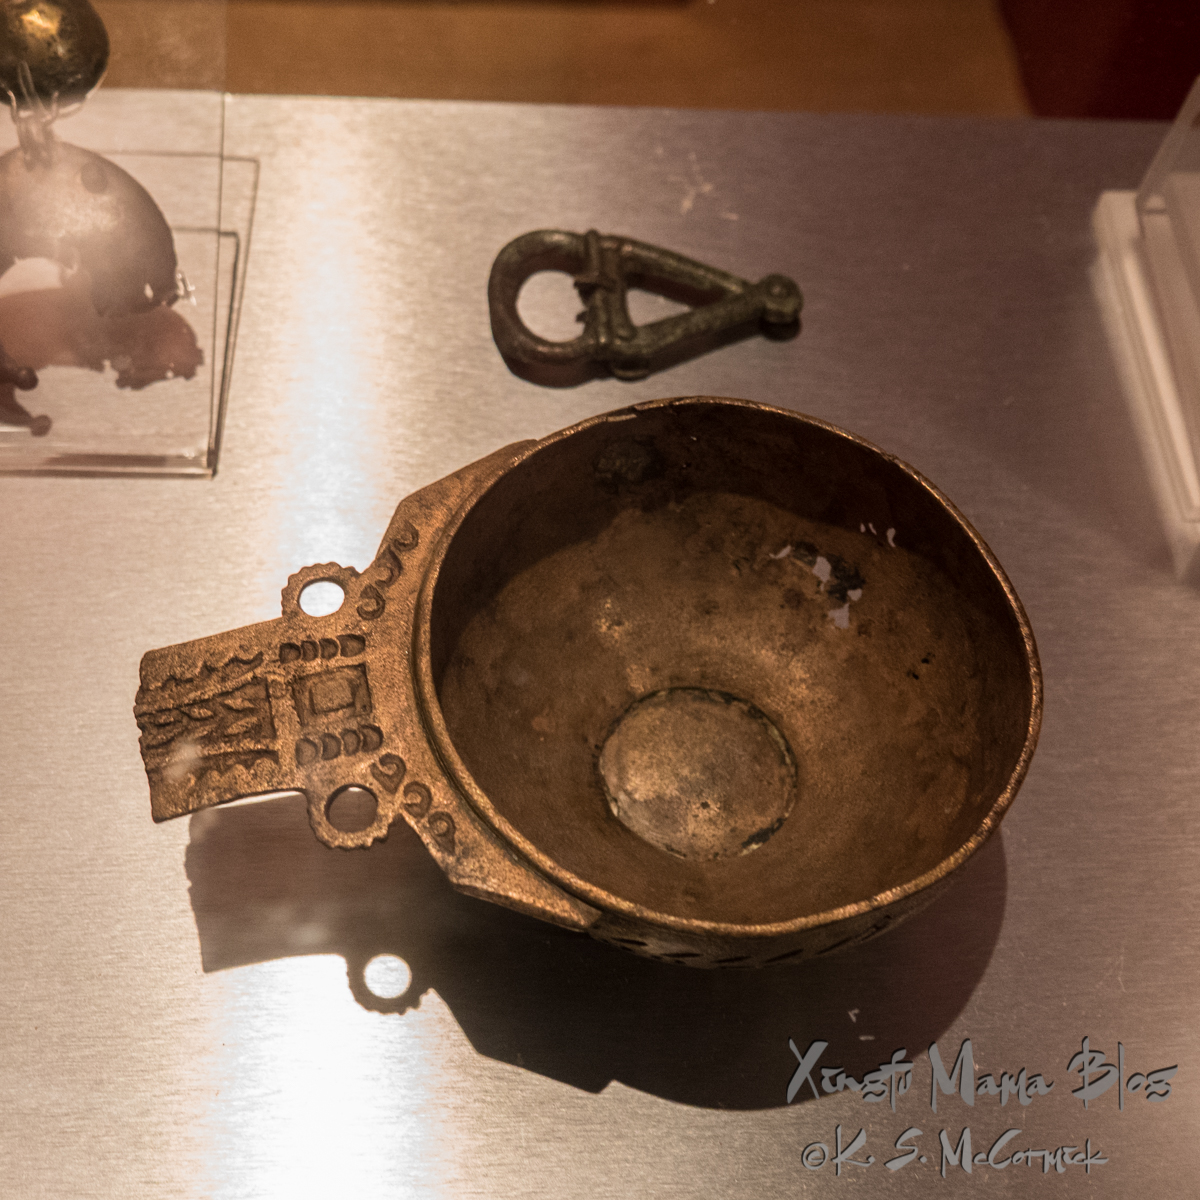 A small pot or eating dish found at Bath, that was from a soldier stationed on Hadrian's Wall.